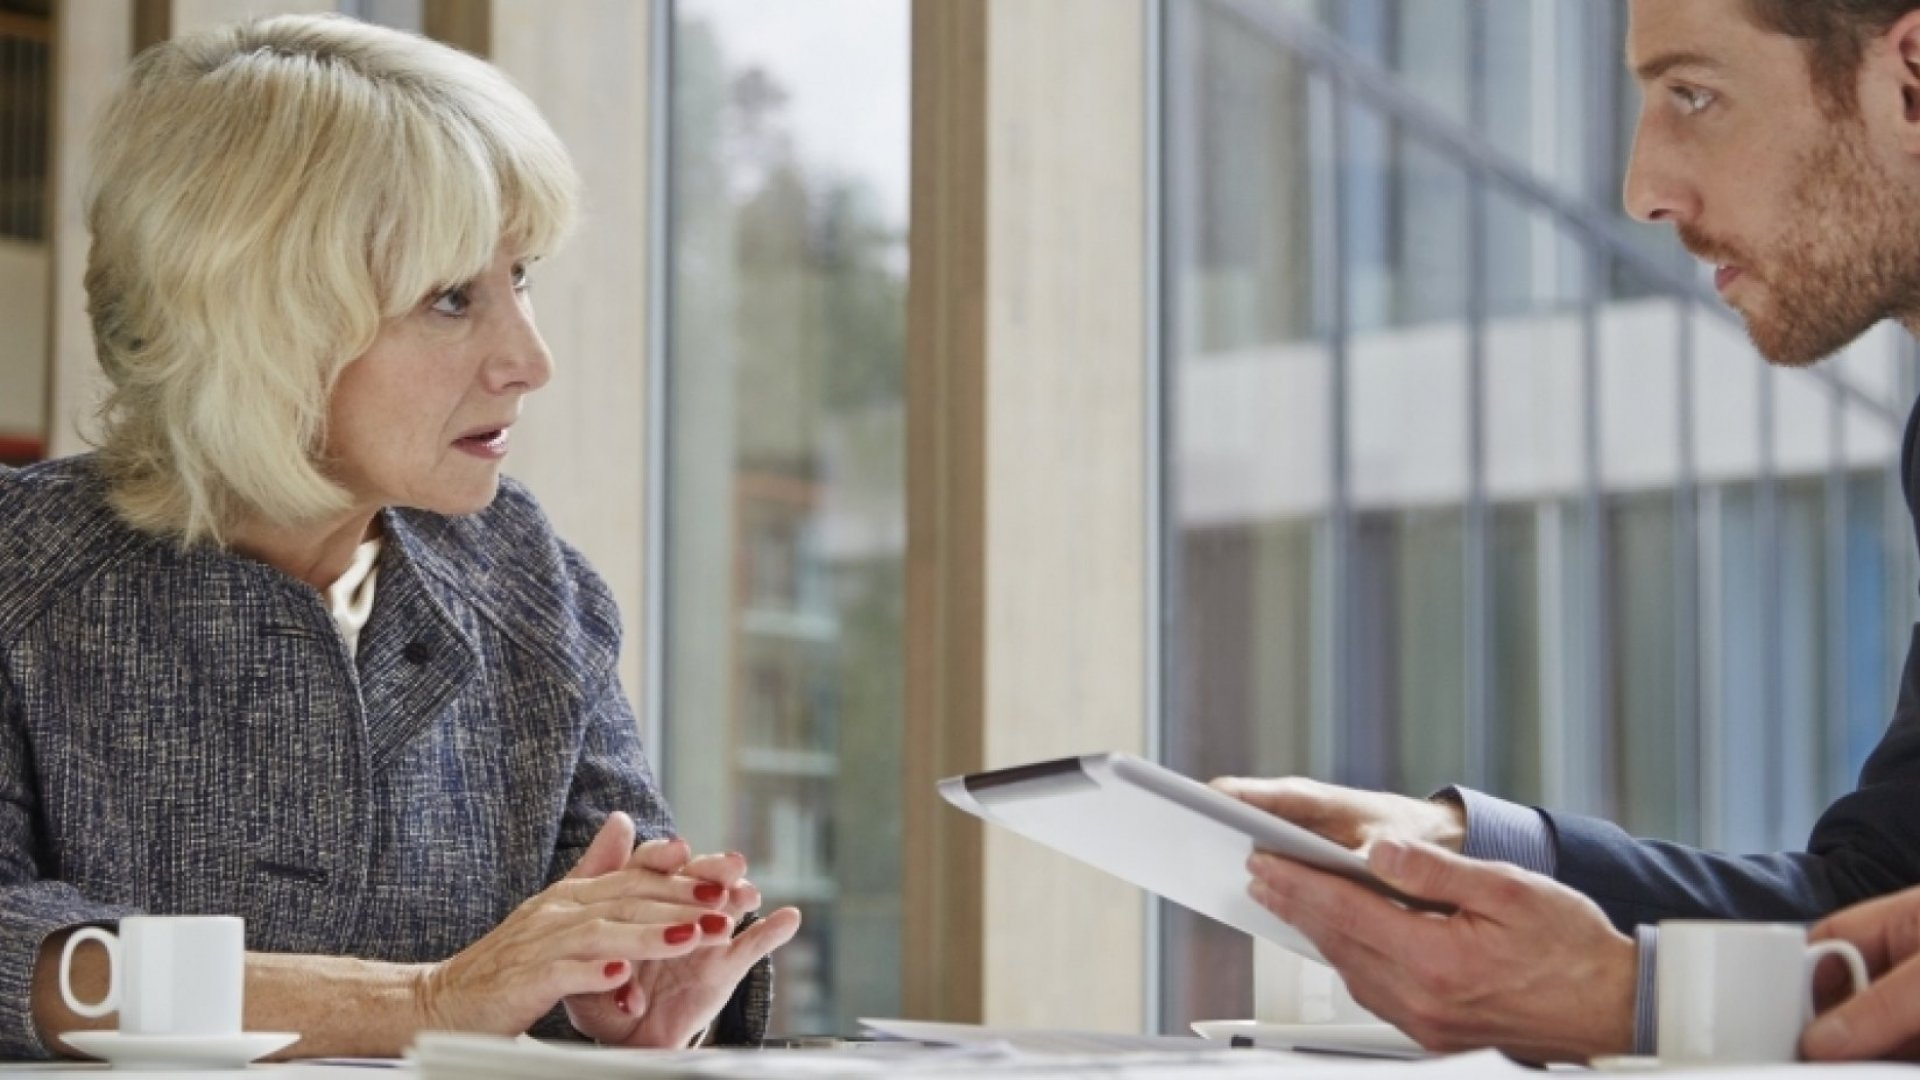 3 Tips to Turn Difficult Conversations Into Productive Ones